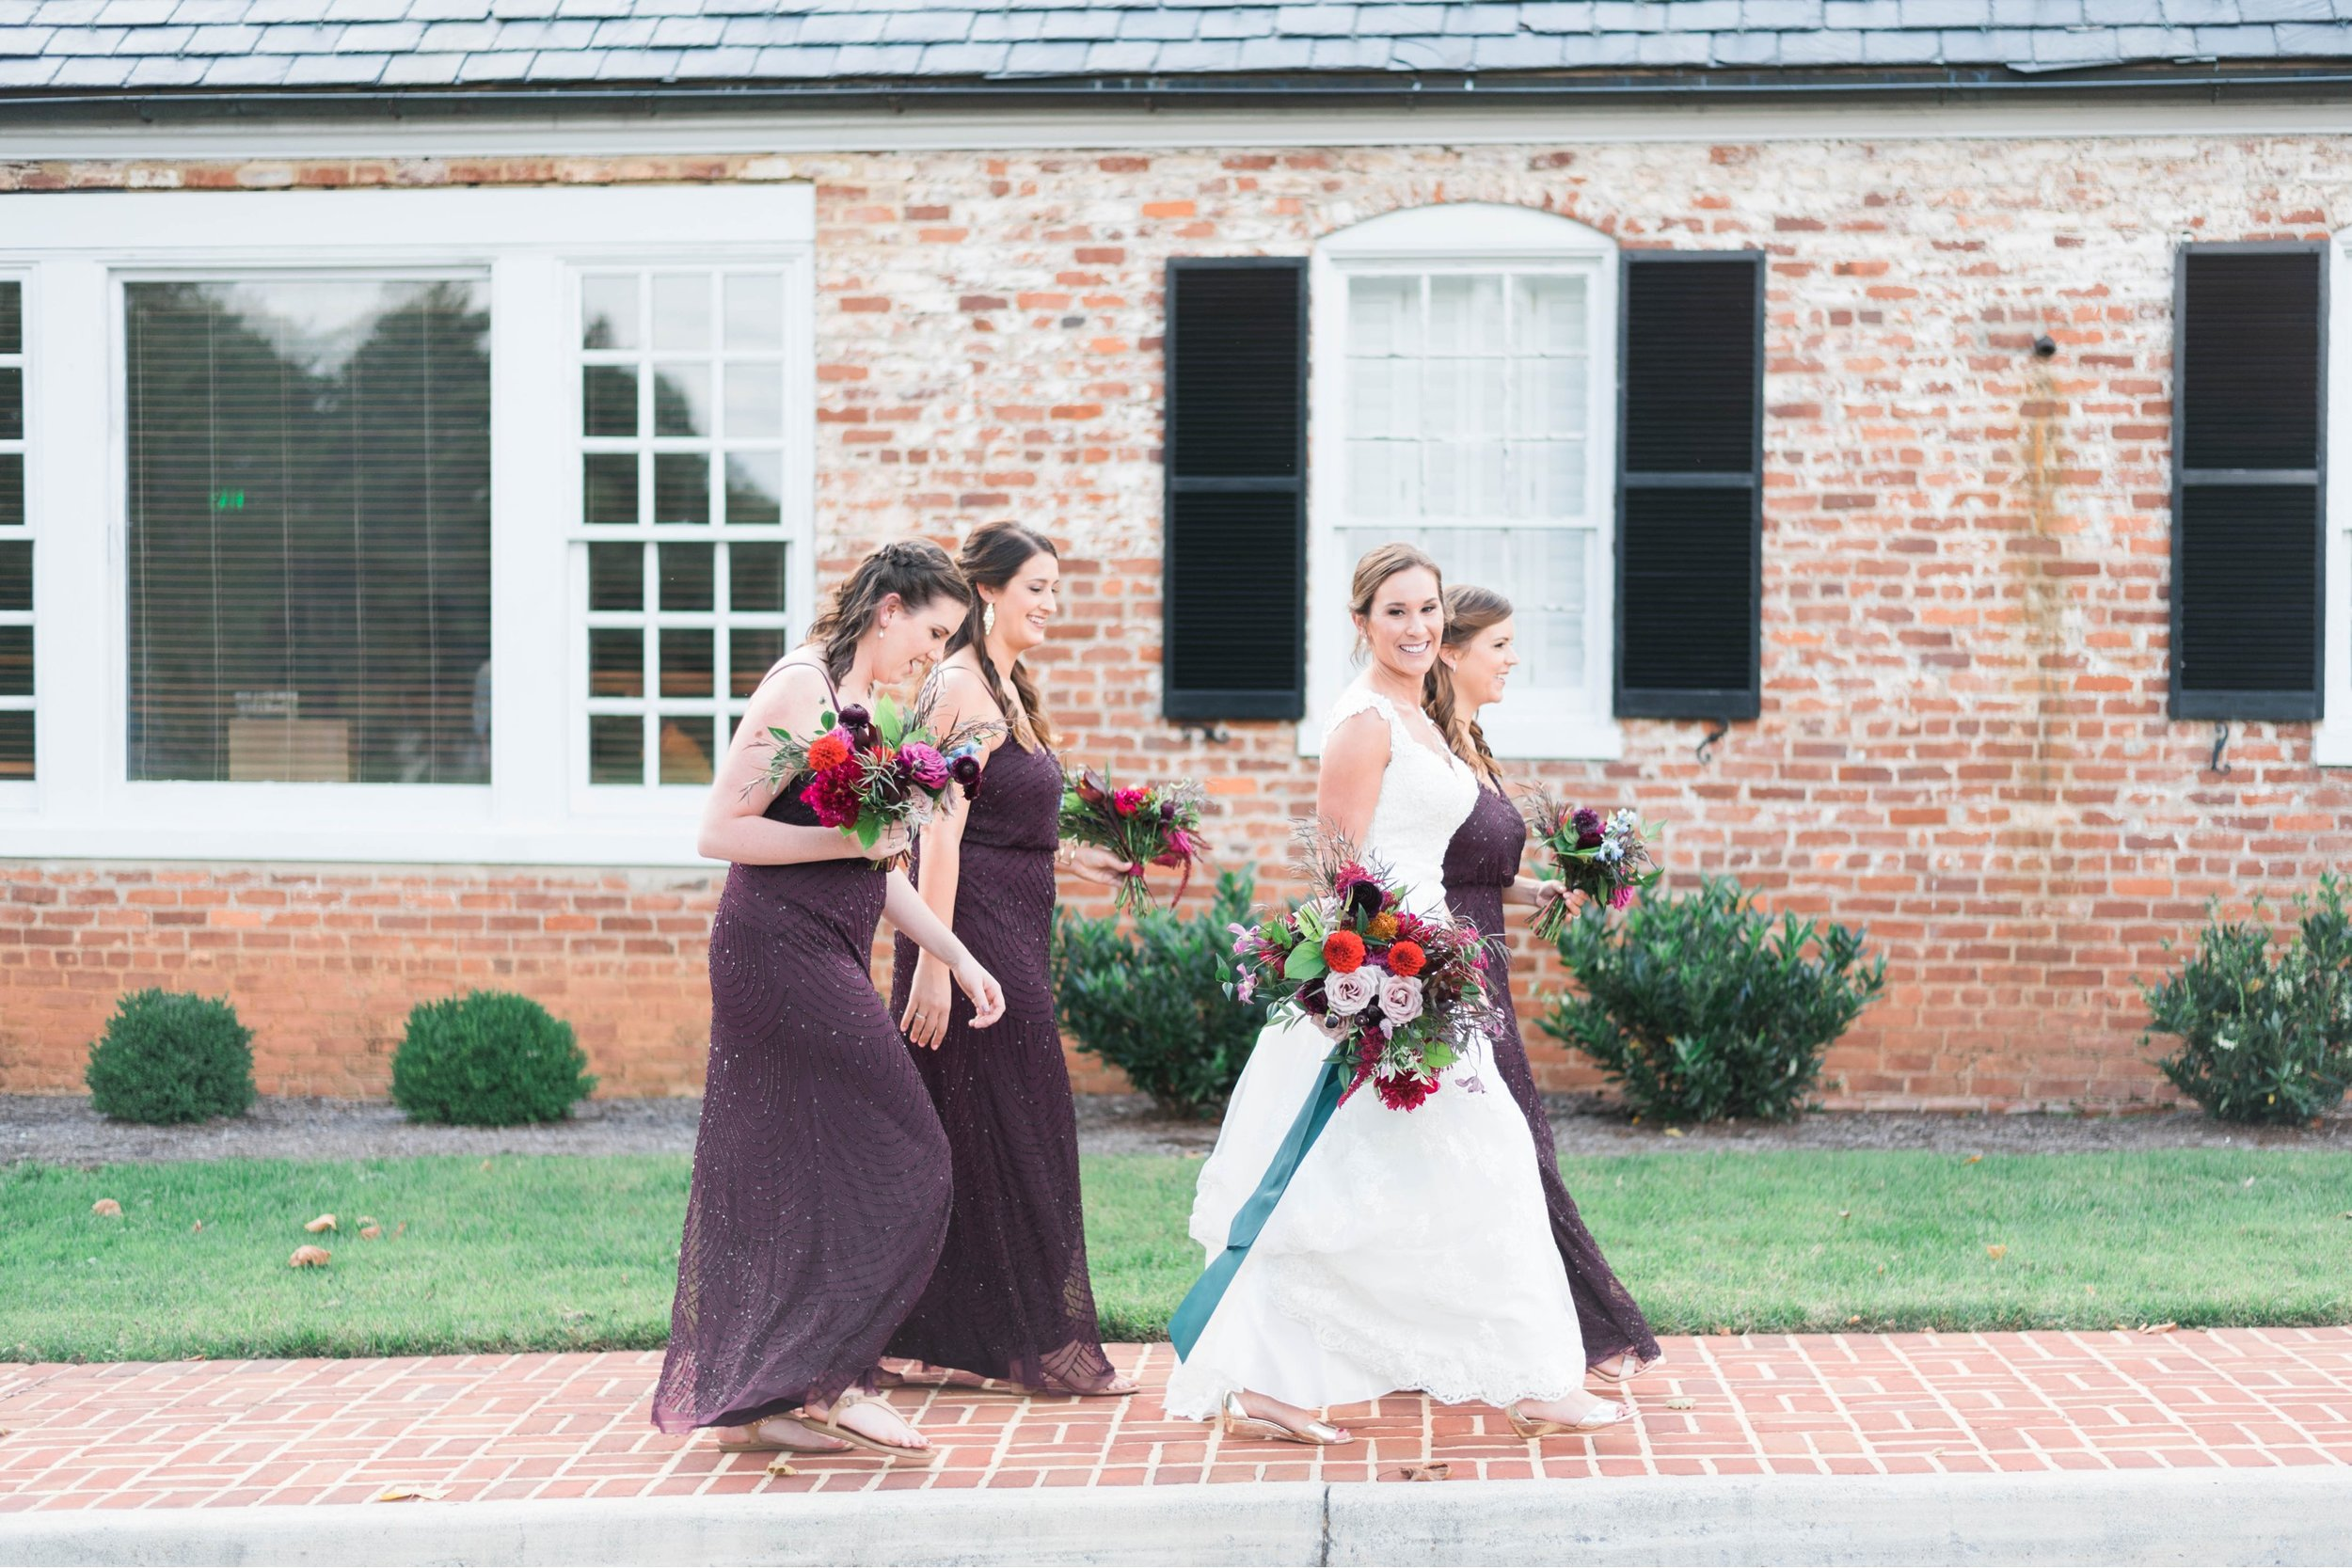 Gordan+Lauren_BoonsboroCountryClubWedding_Virginiaweddingphotographer_LynchburgVi 26.jpg